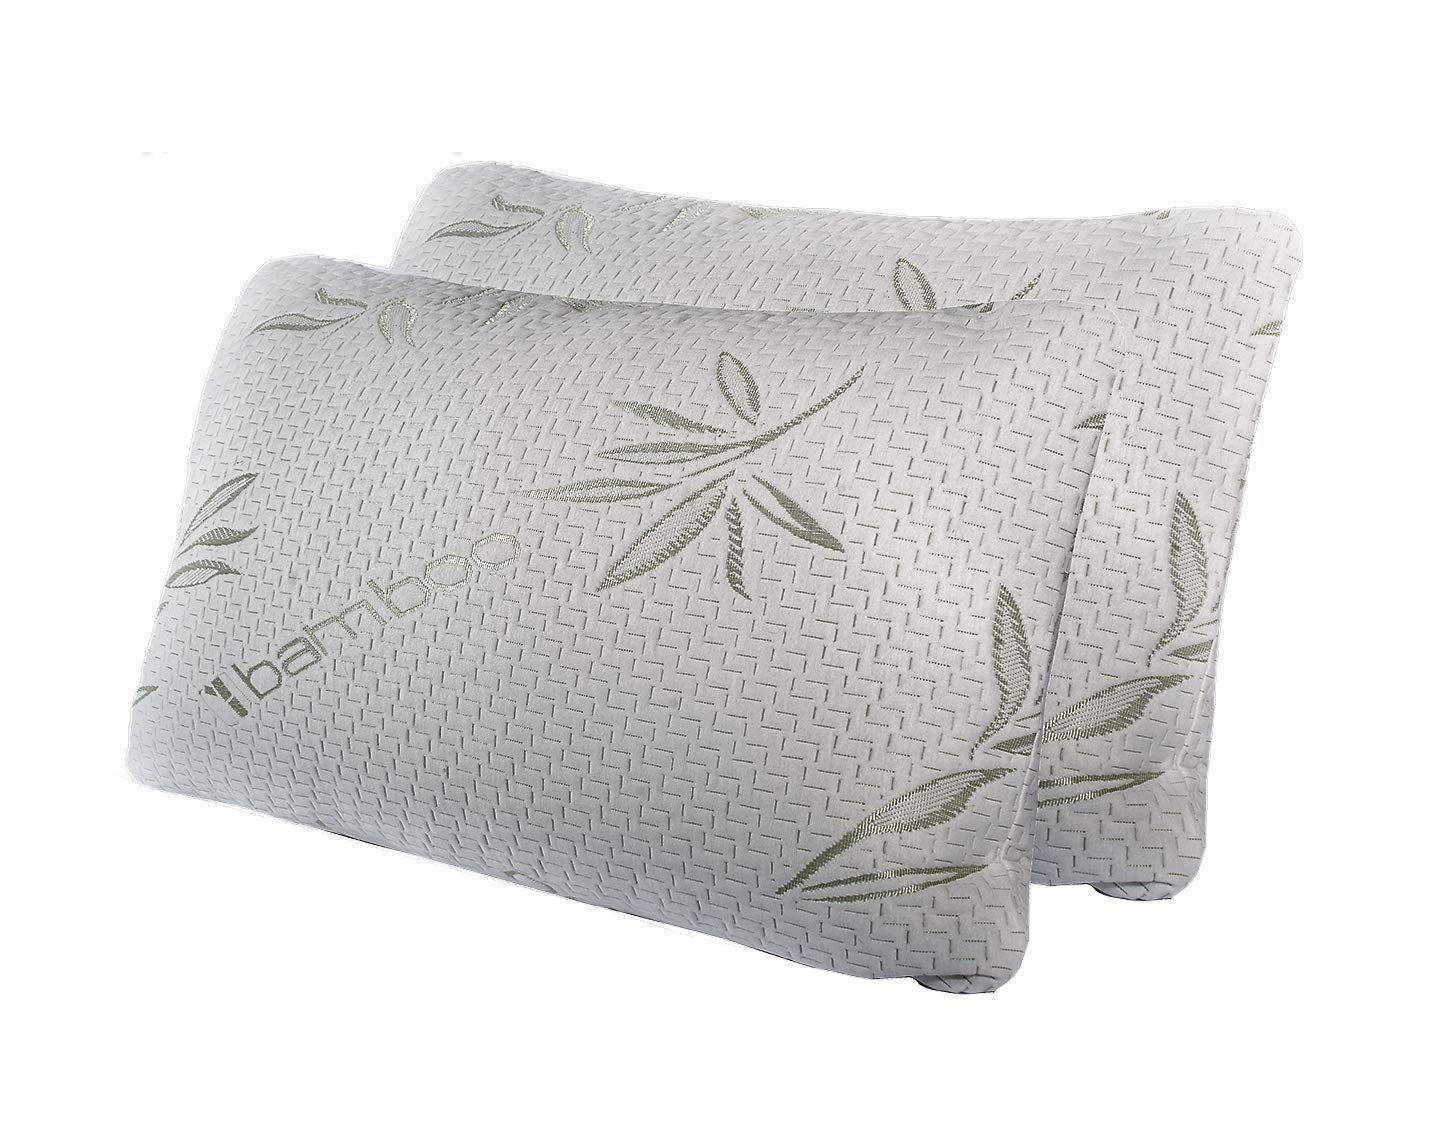 HC Comfort Premium Bamboo Memory Foam Pillow Set of 2. Ultra Cool Hypoallergenic Washable Bamboo Cover USA Designed Queen.